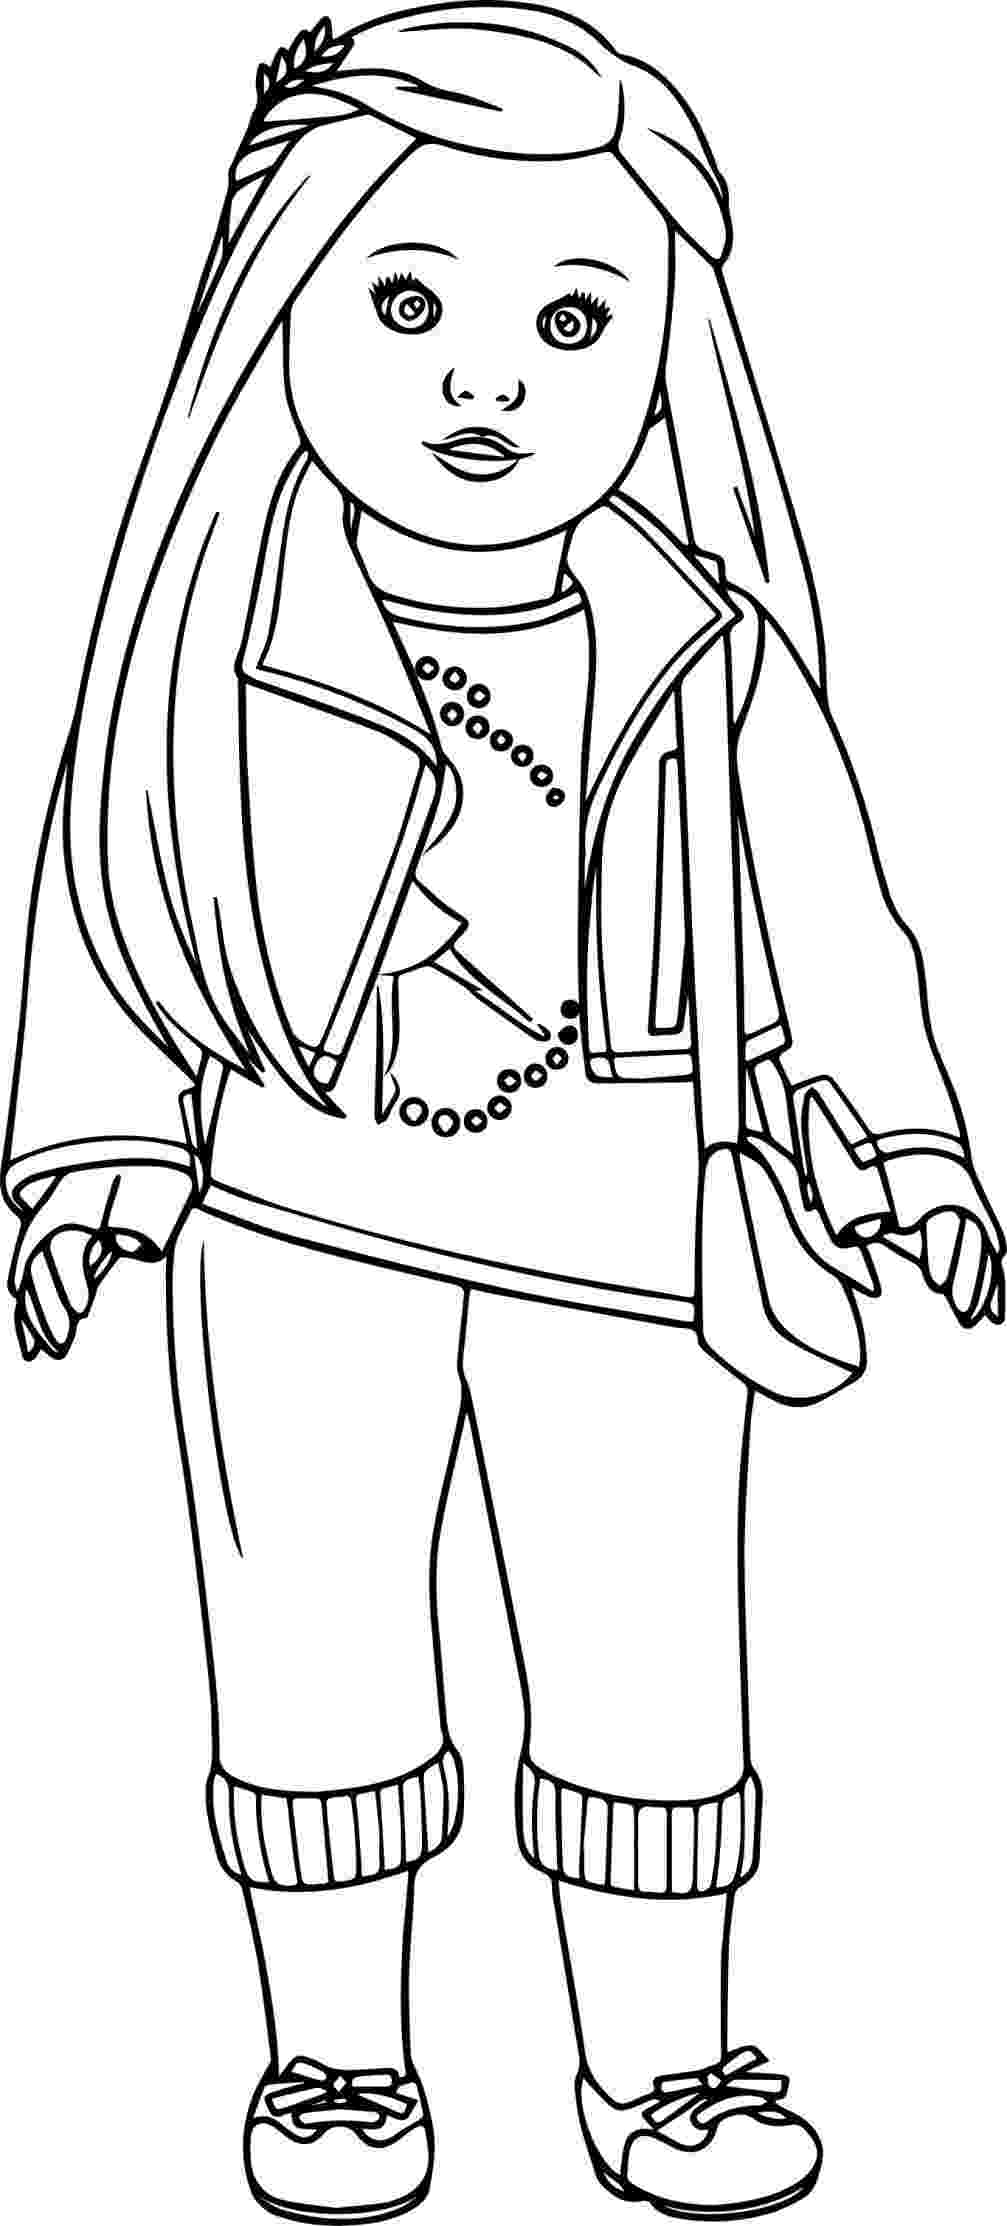 coloring pages american girl american girl grace thomas coloring page free printable girl pages coloring american